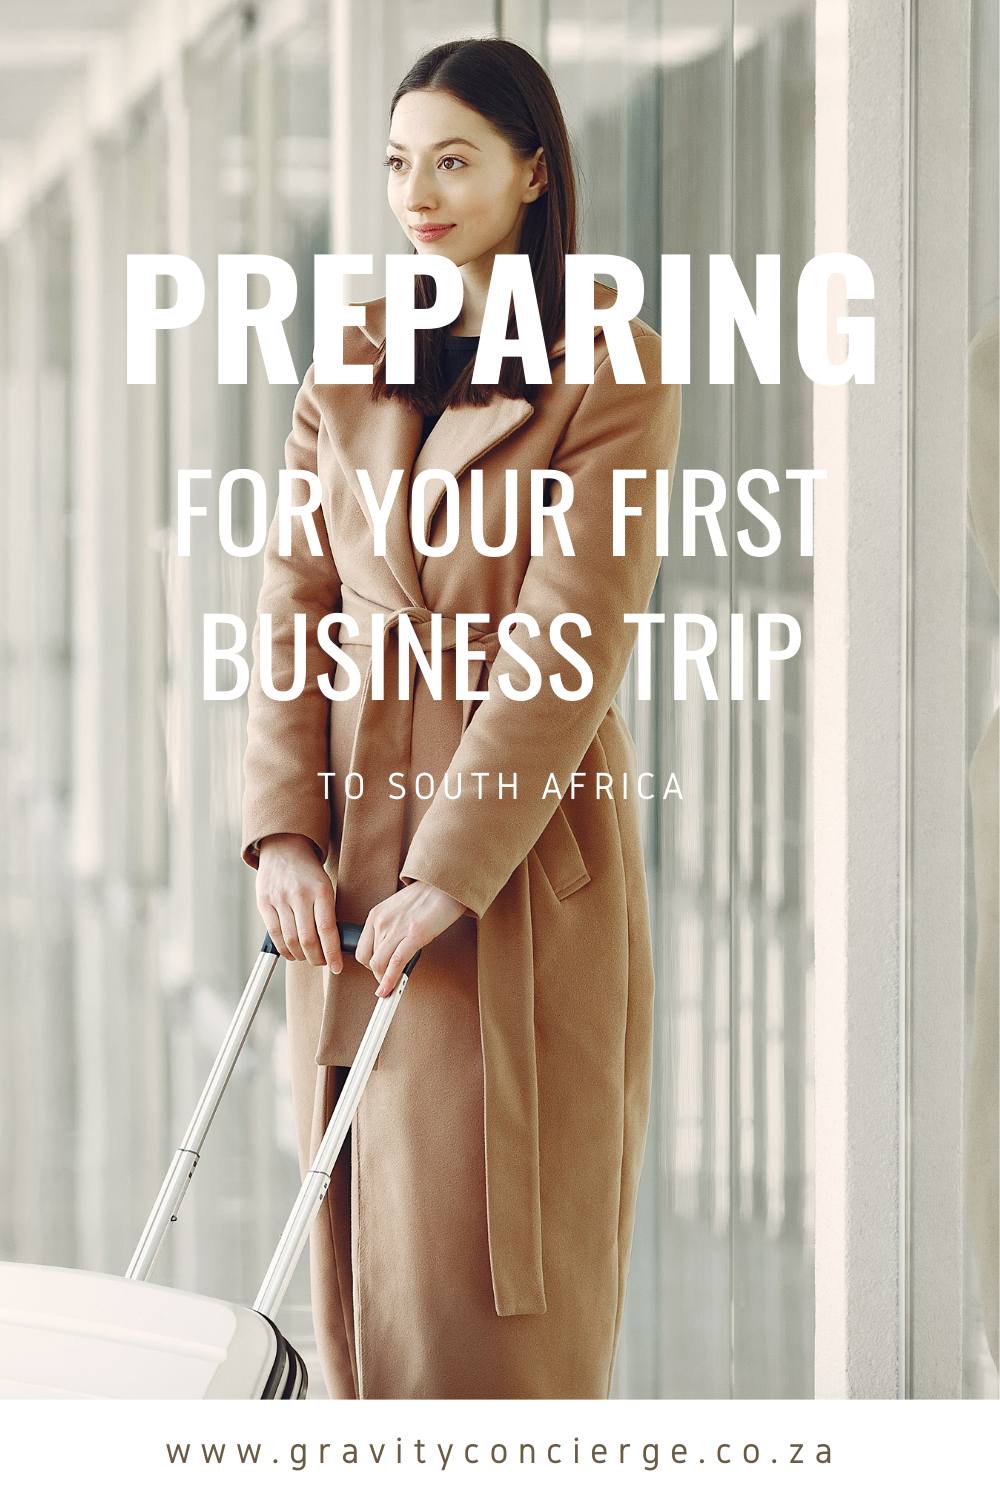 Preparing for your First Business Trip to South Africa